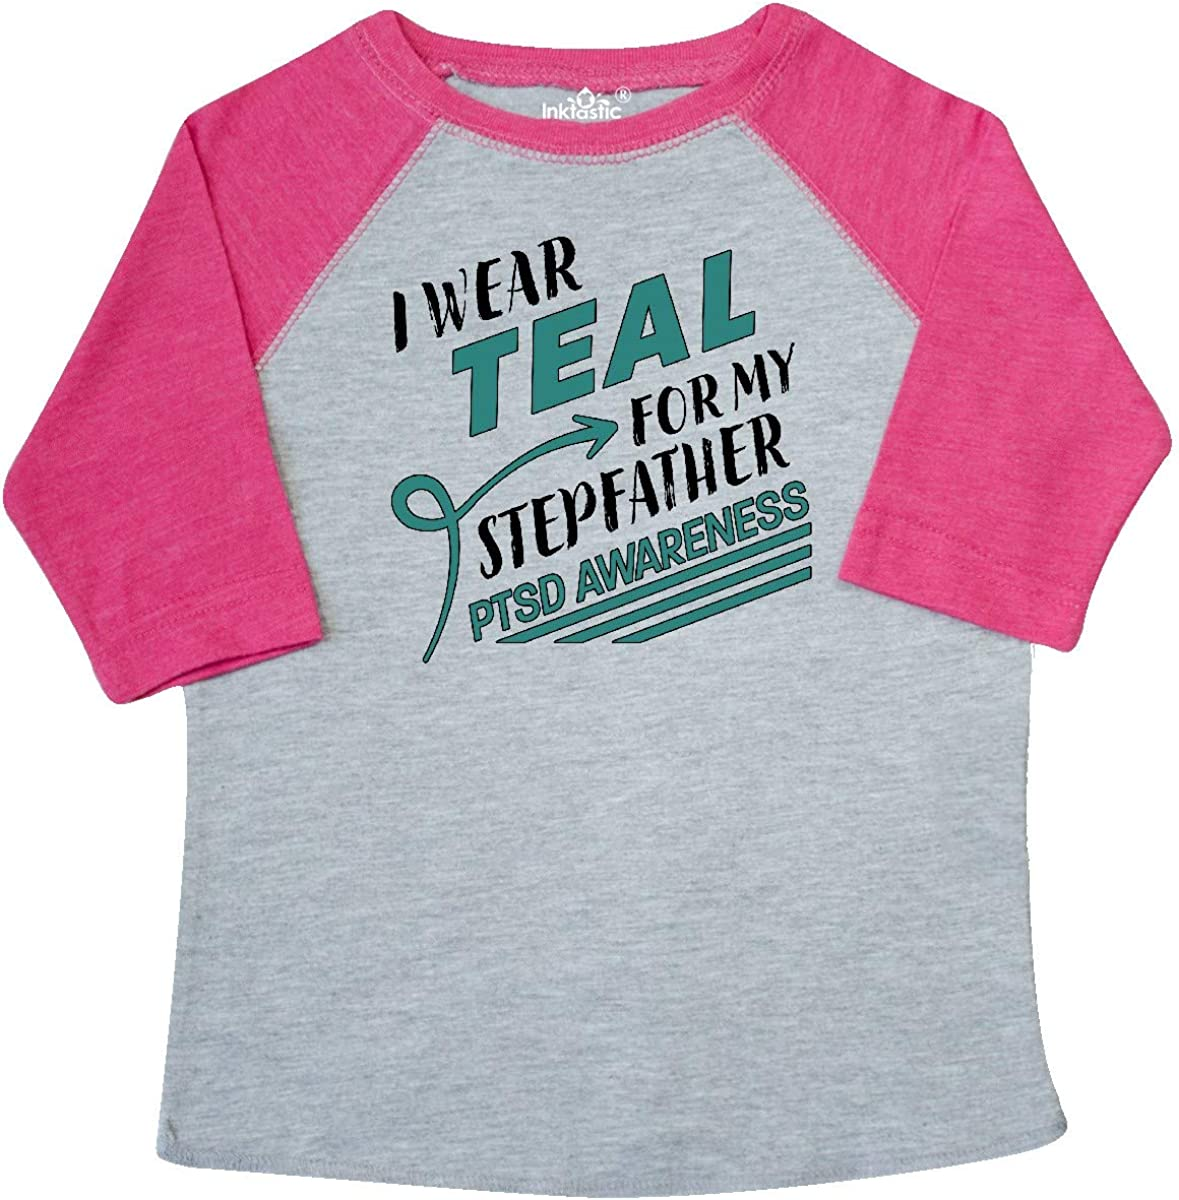 PTSD Awareness Toddler T-Shirt inktastic I Wear Teal for My Stepfather